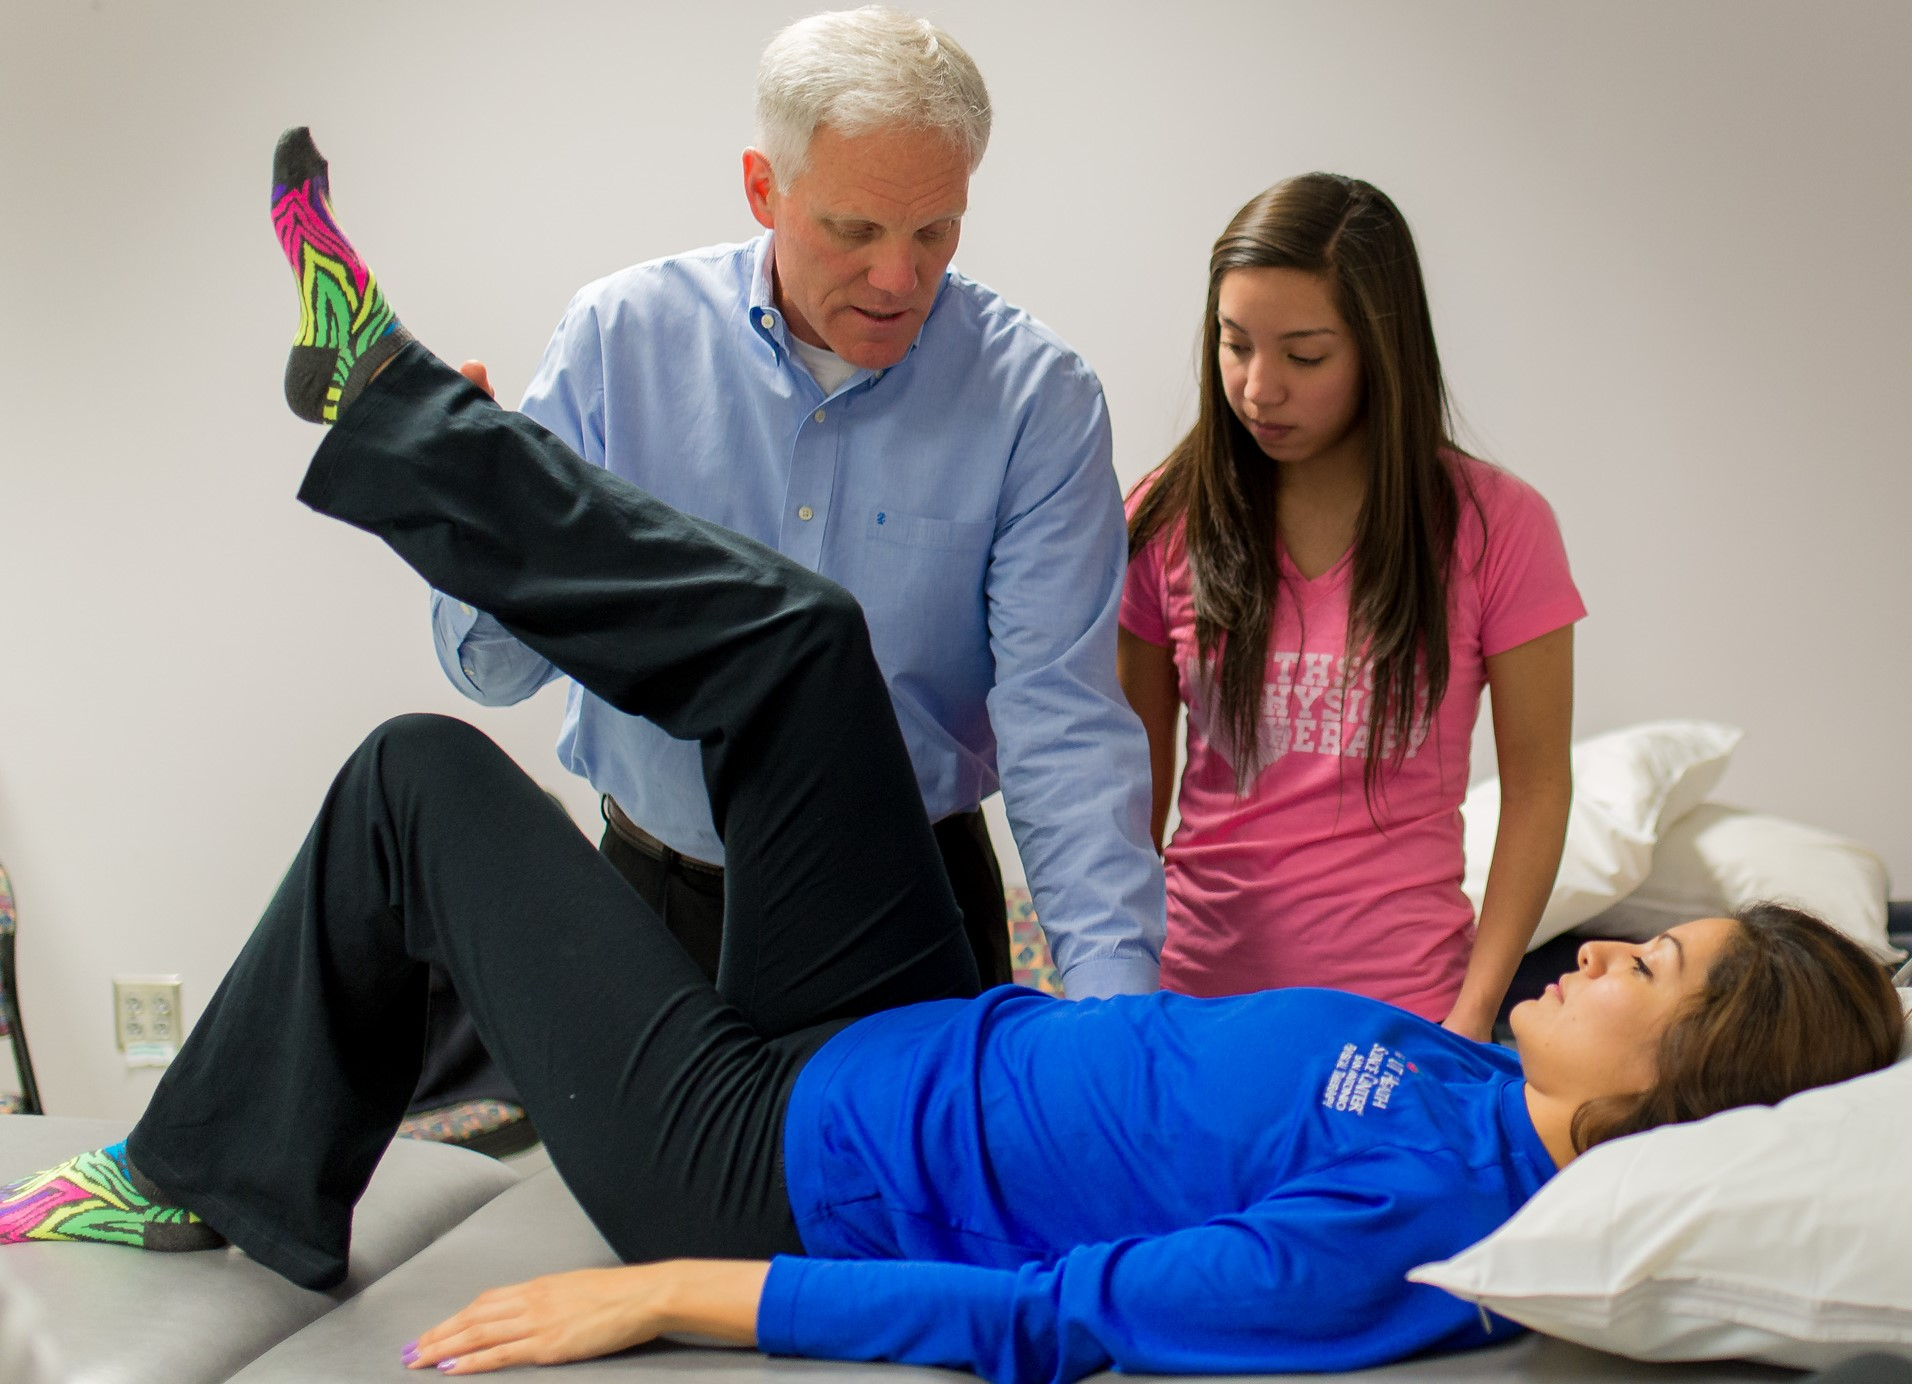 Bexar county physical therapy - The Students Clinical Experience Take Place In All Areas Of Physical Therapy Across The United States